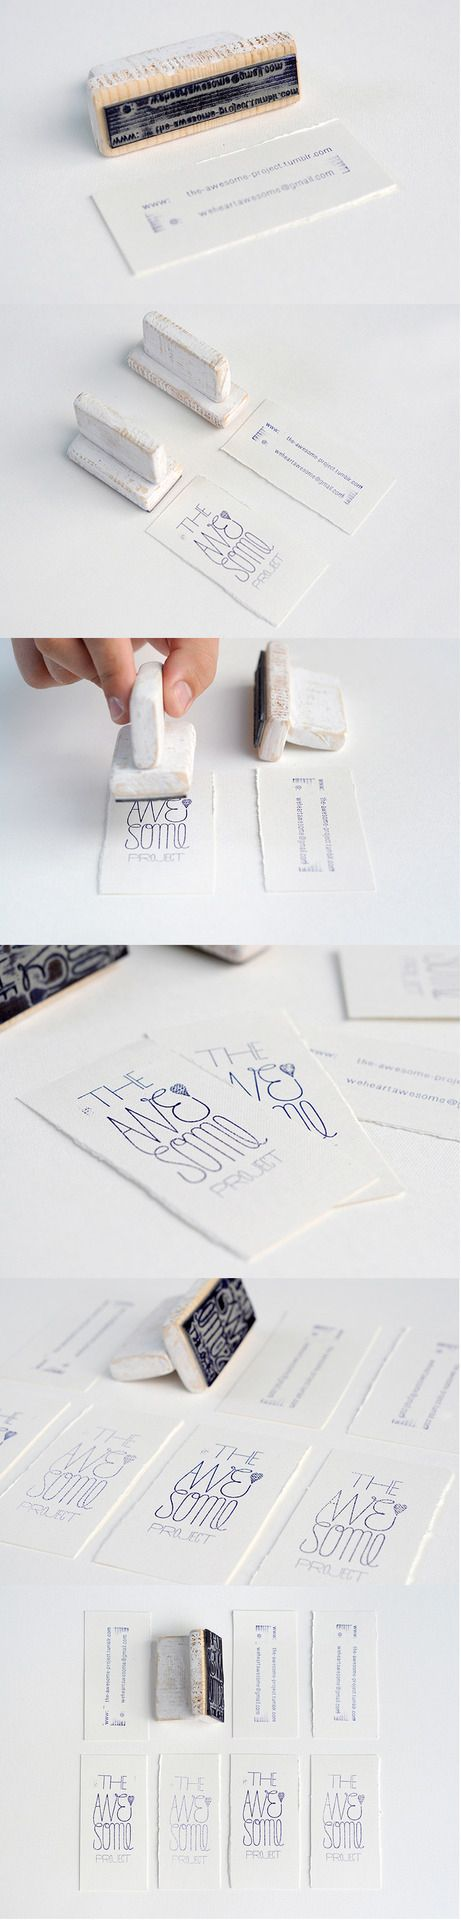 Hand-Made, Stamp-Printed Business Cards